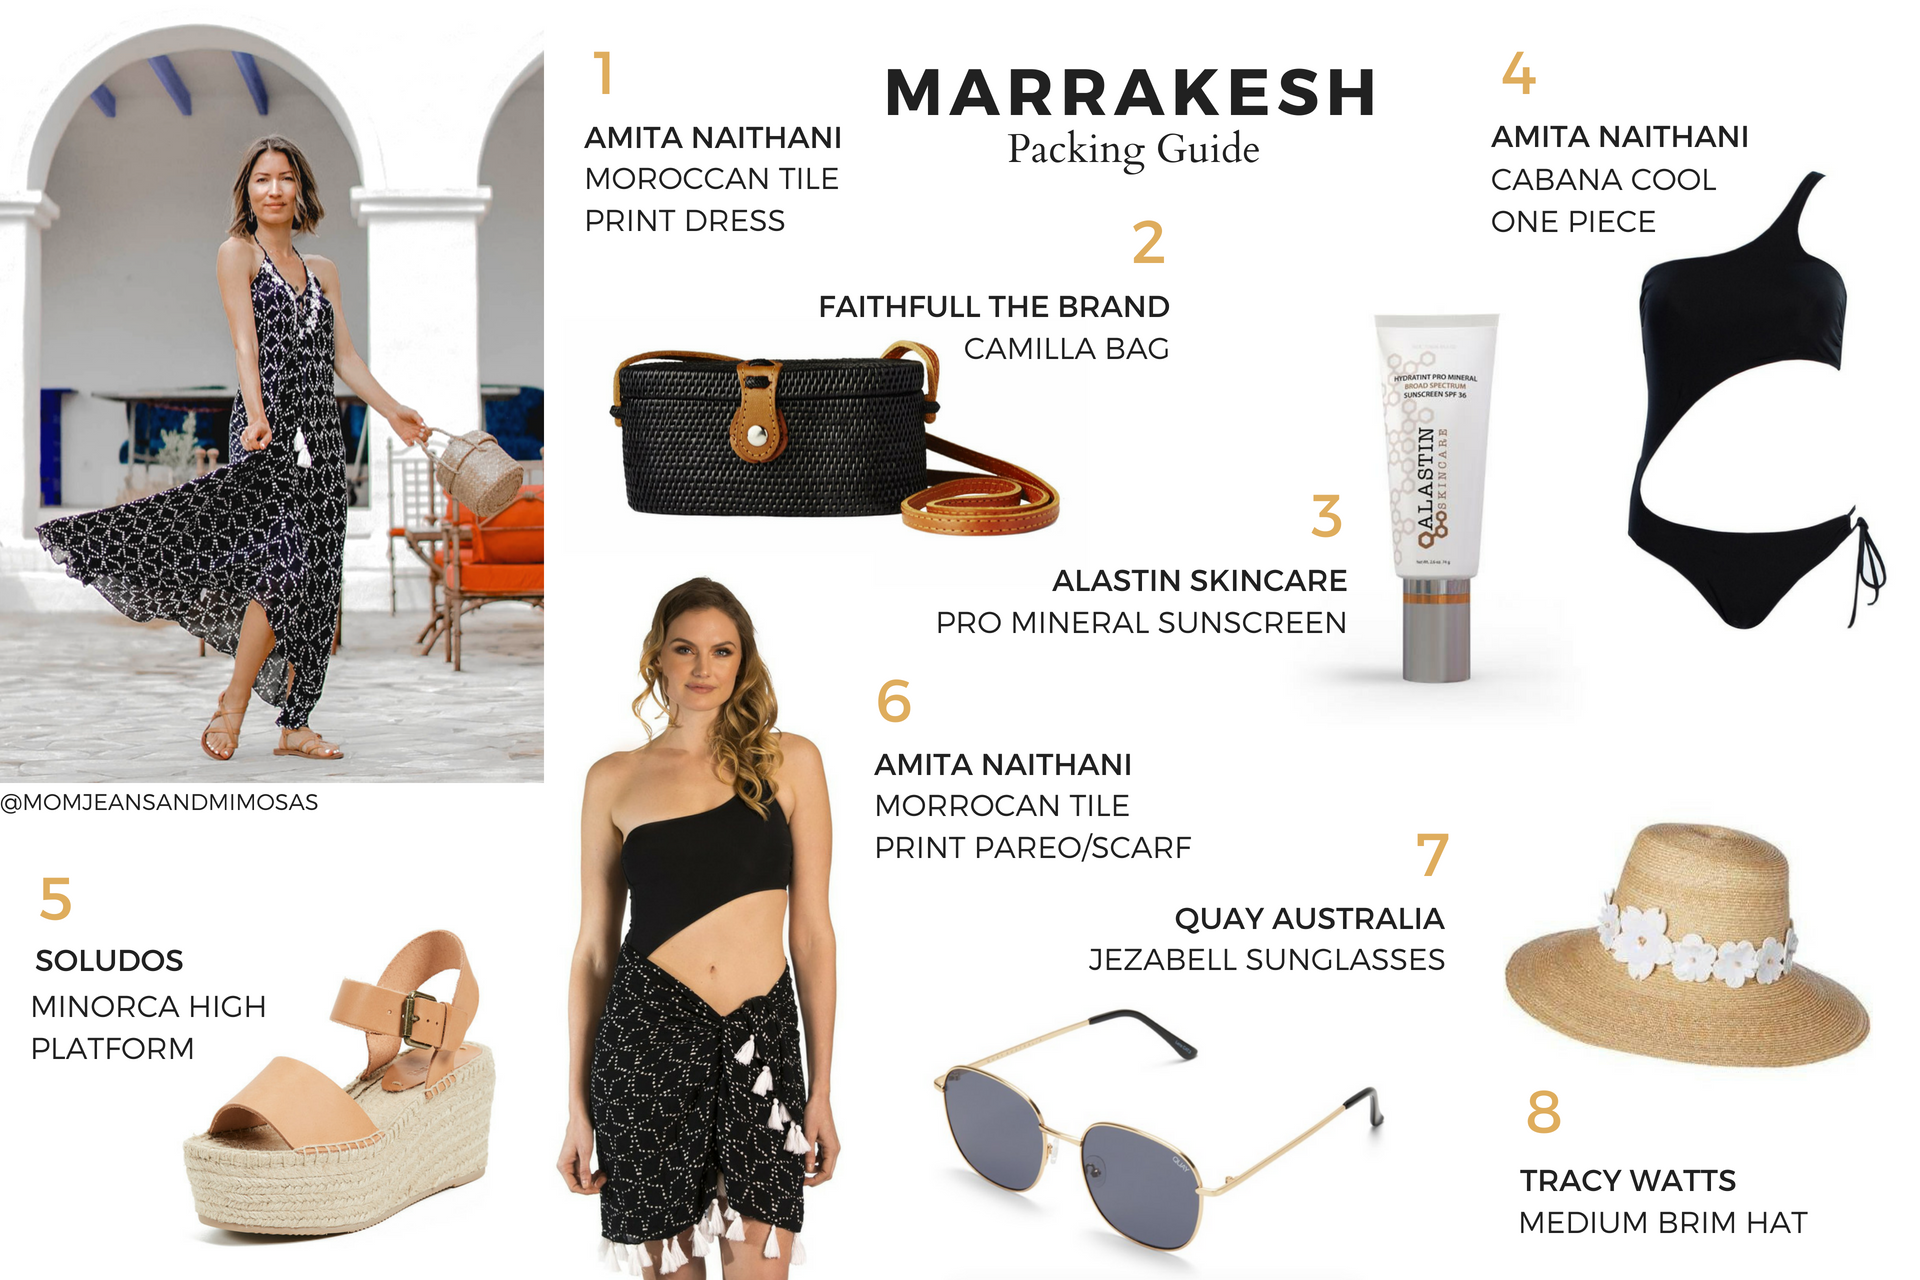 Marrakesh Packing Guide